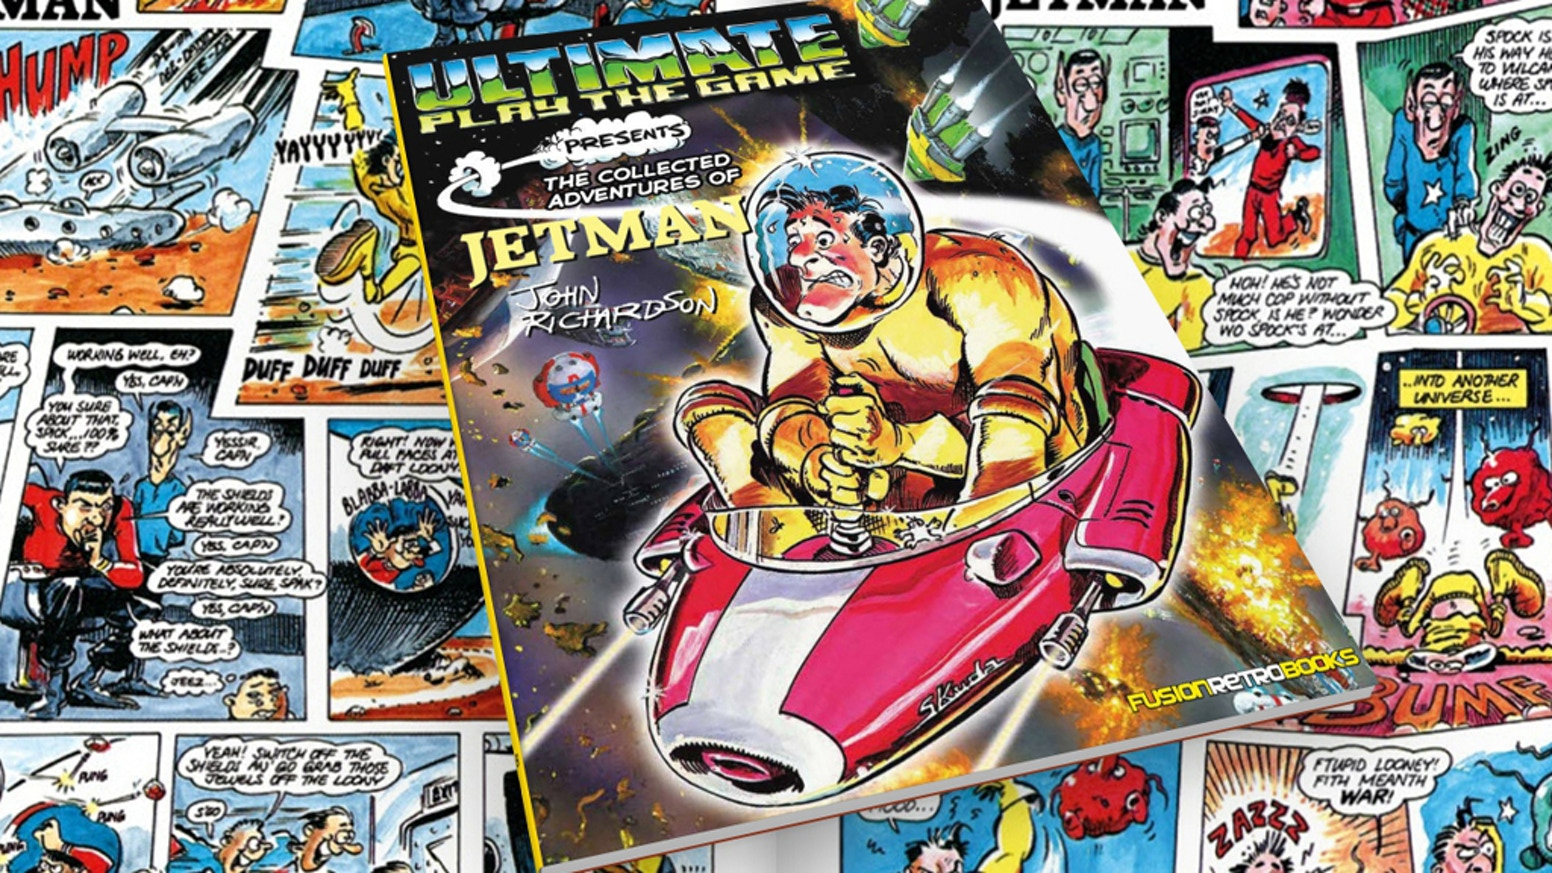 A book of the complete Jetman comic strip that appeared in CRASH magazine! The 'ultimate' tribute to this space hero!